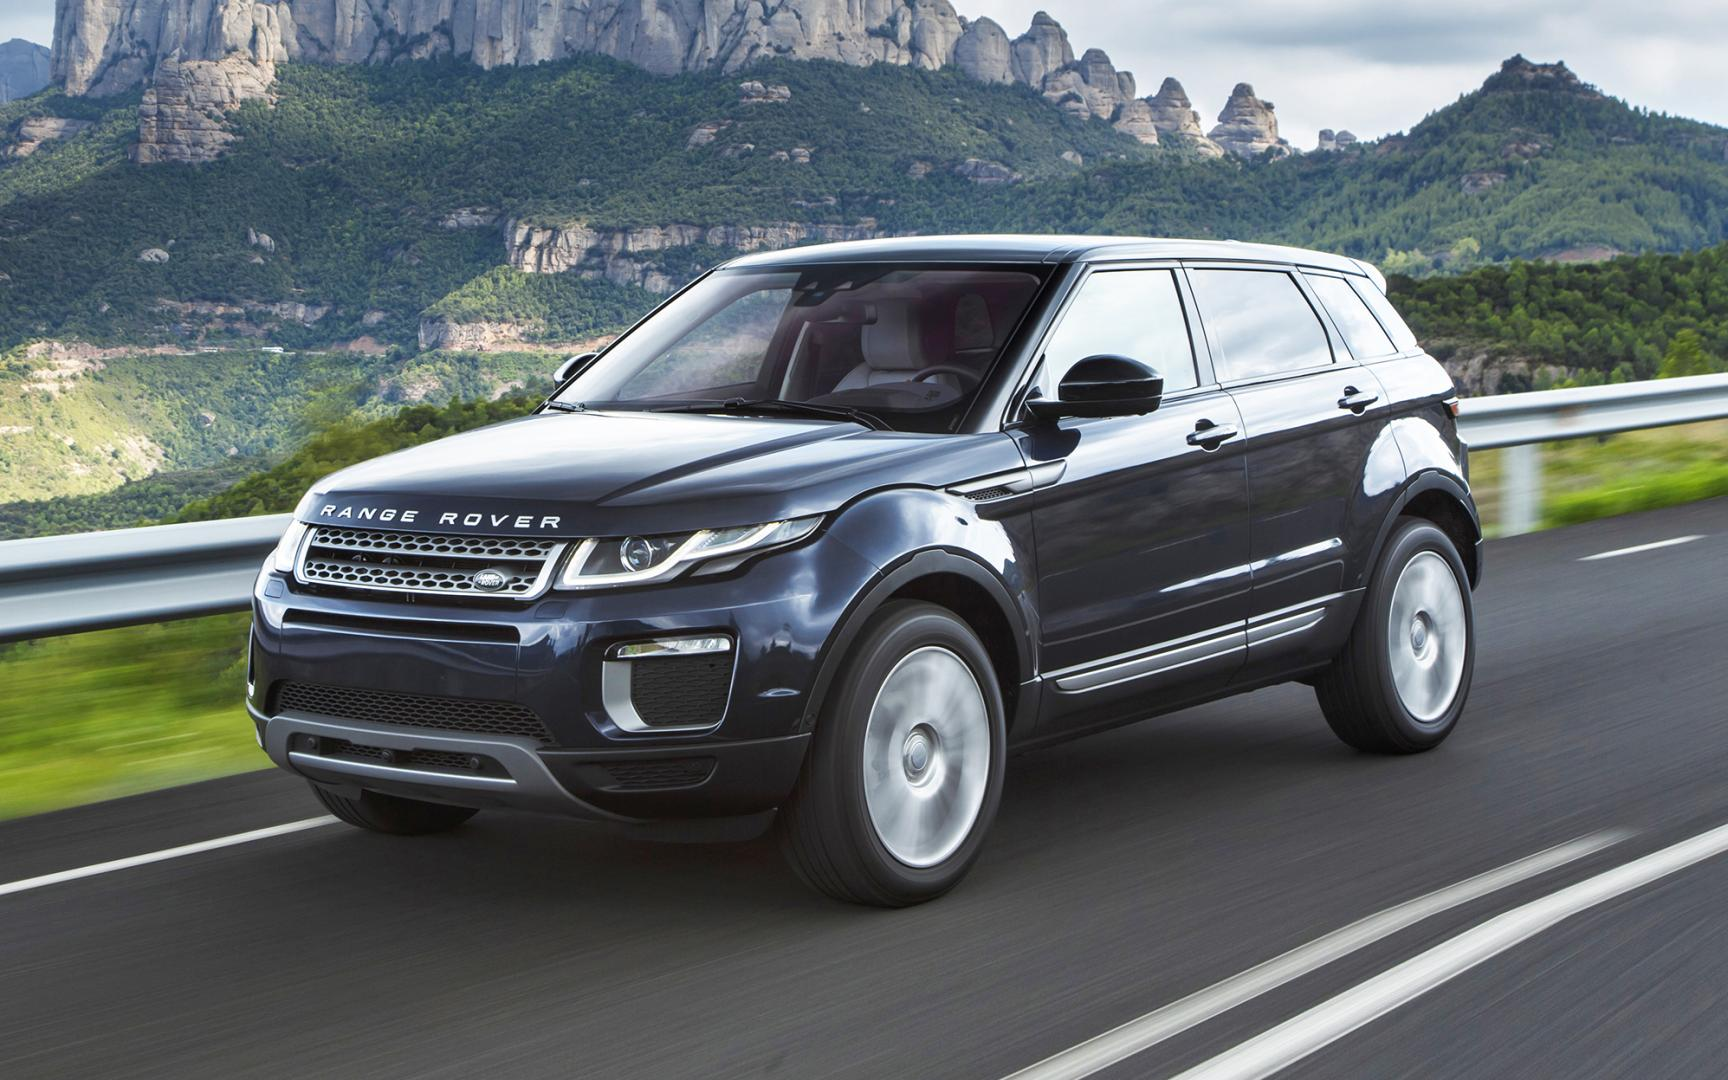 range rover evoque ed4 150 pk 2015 topgear nederland. Black Bedroom Furniture Sets. Home Design Ideas